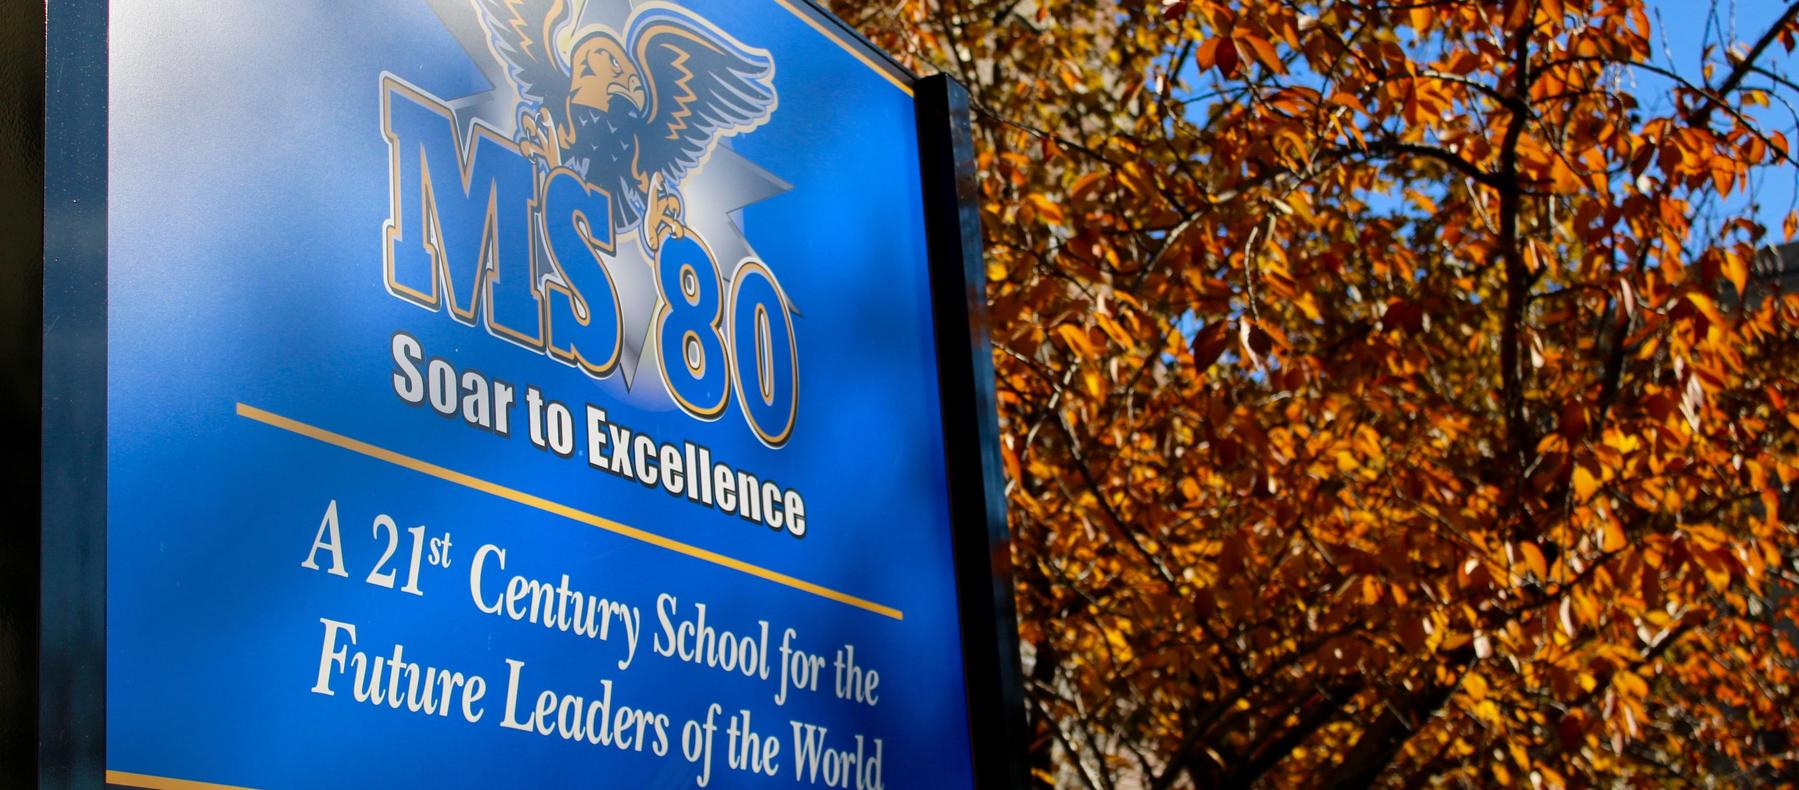 Signage: MS80 Soar to Excellence